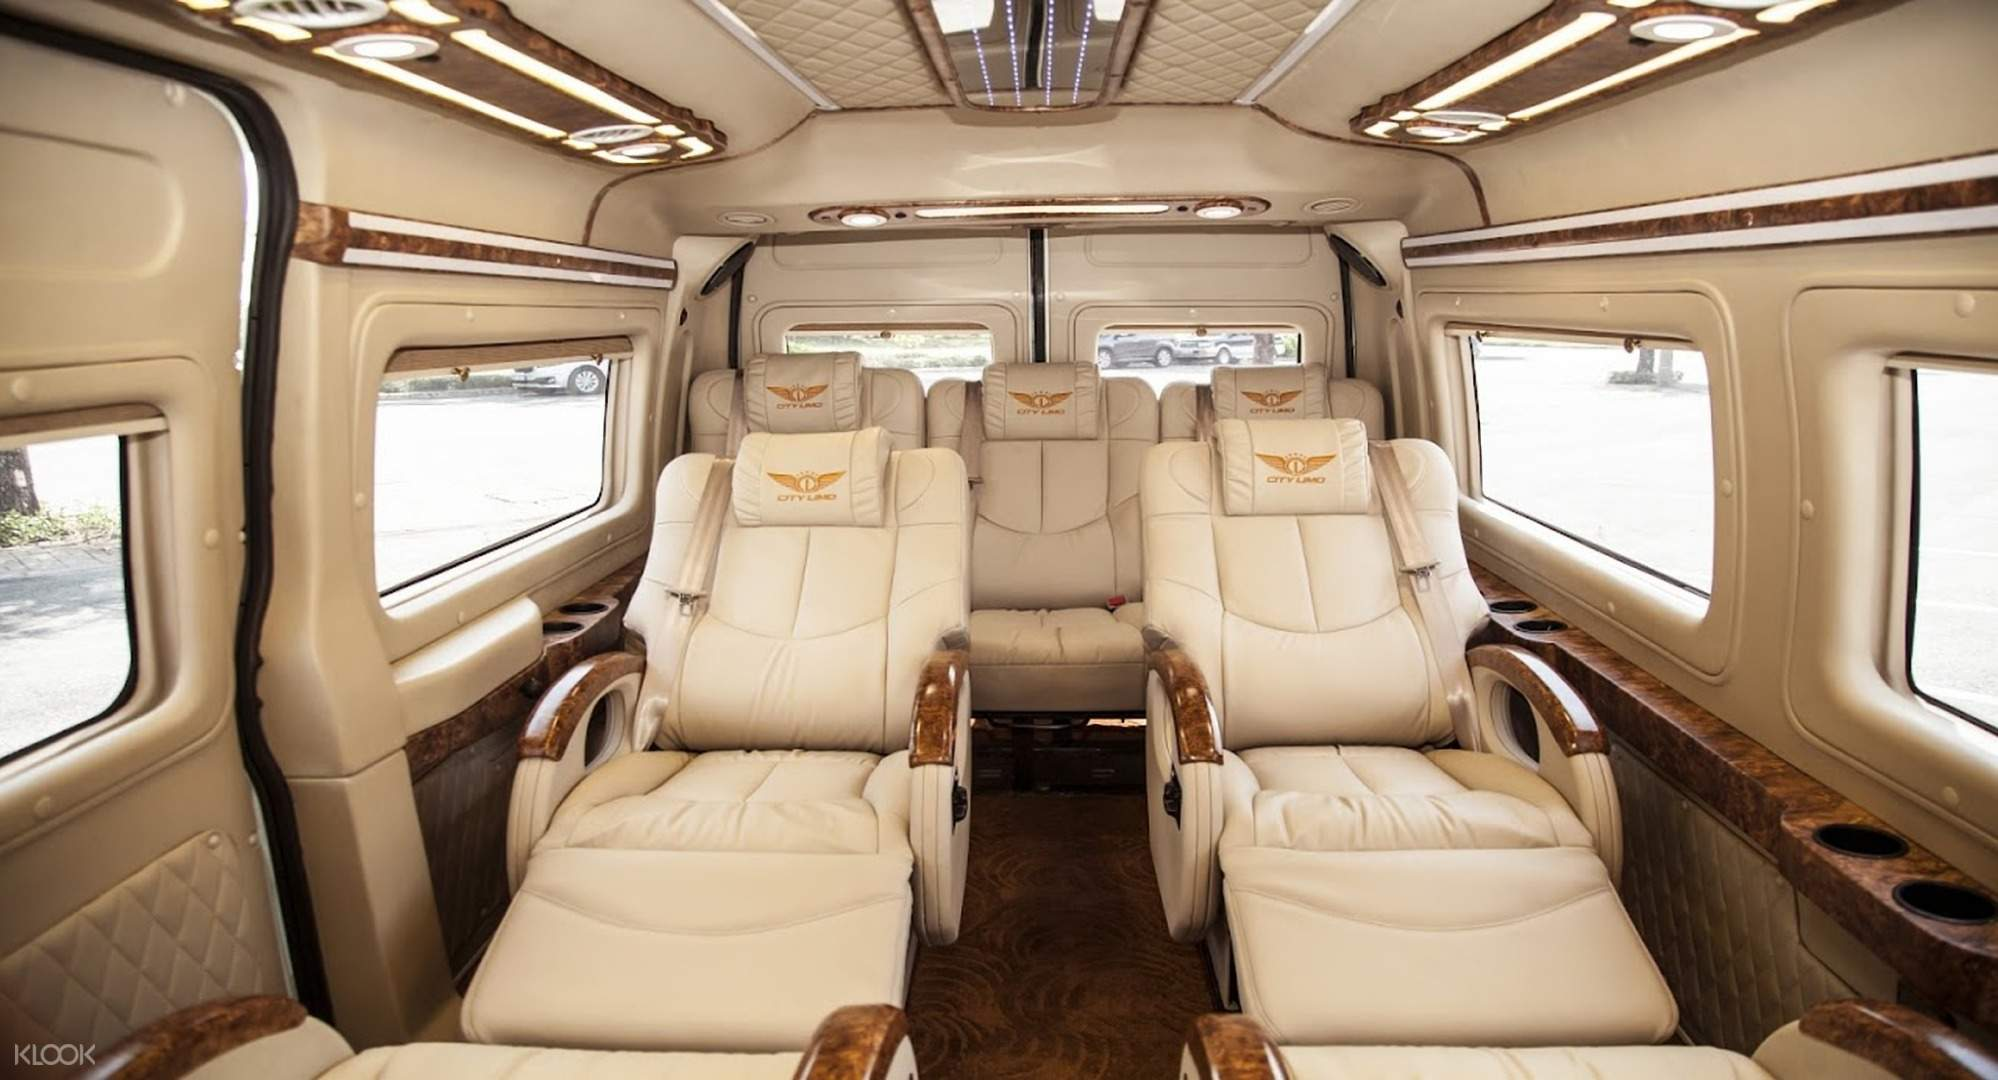 Shared Limousine Transfers between Ho Chi Minh City and Phnom Penh